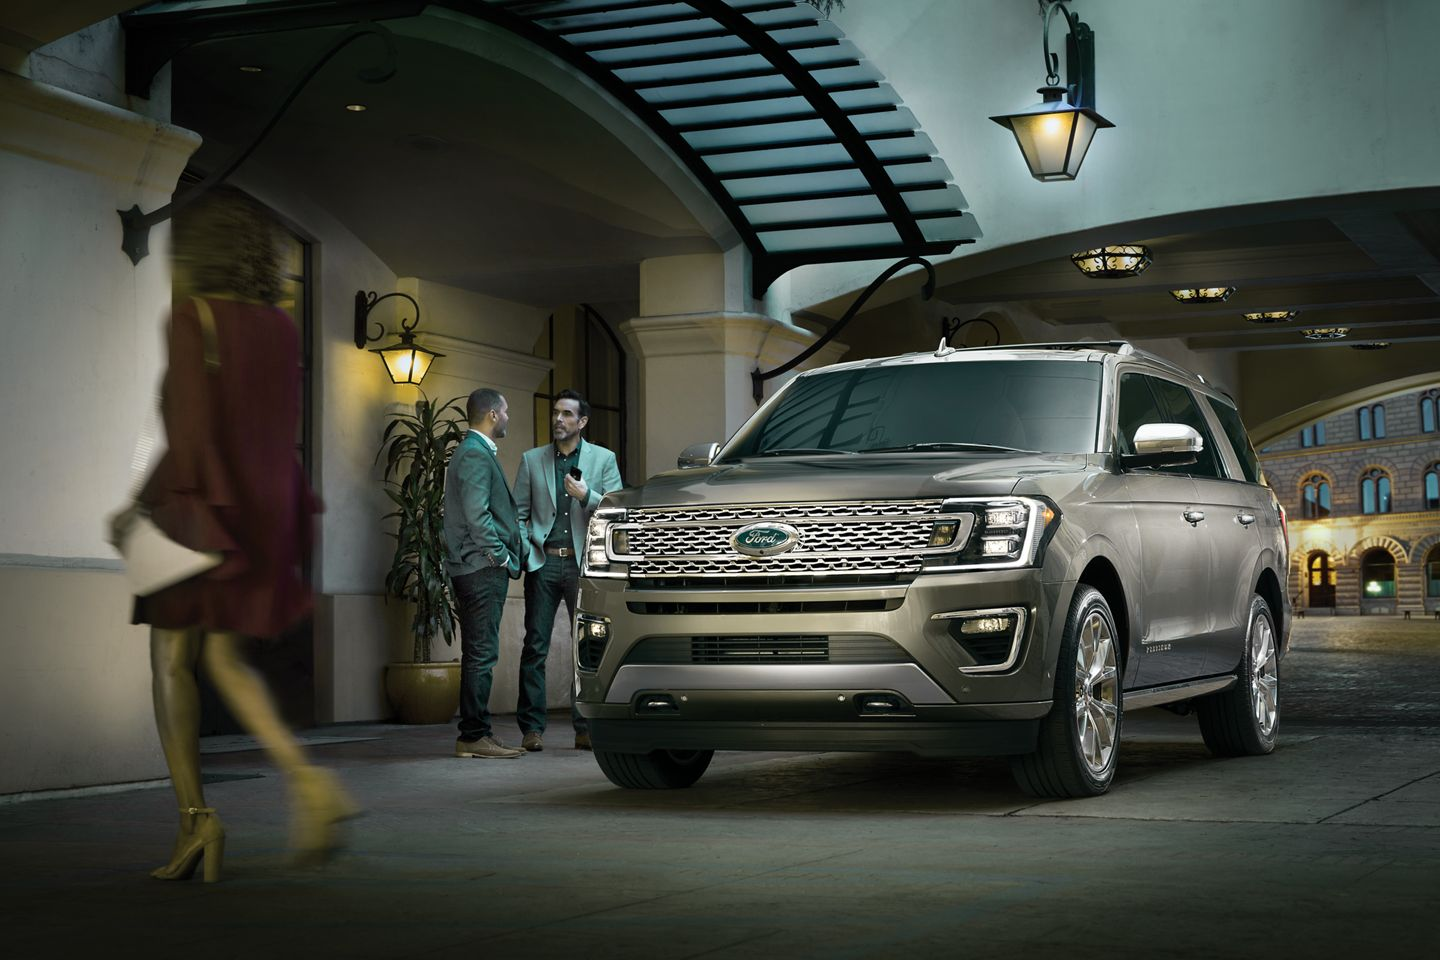 2019 Ford Expedition for Sale near Mesquite, TX